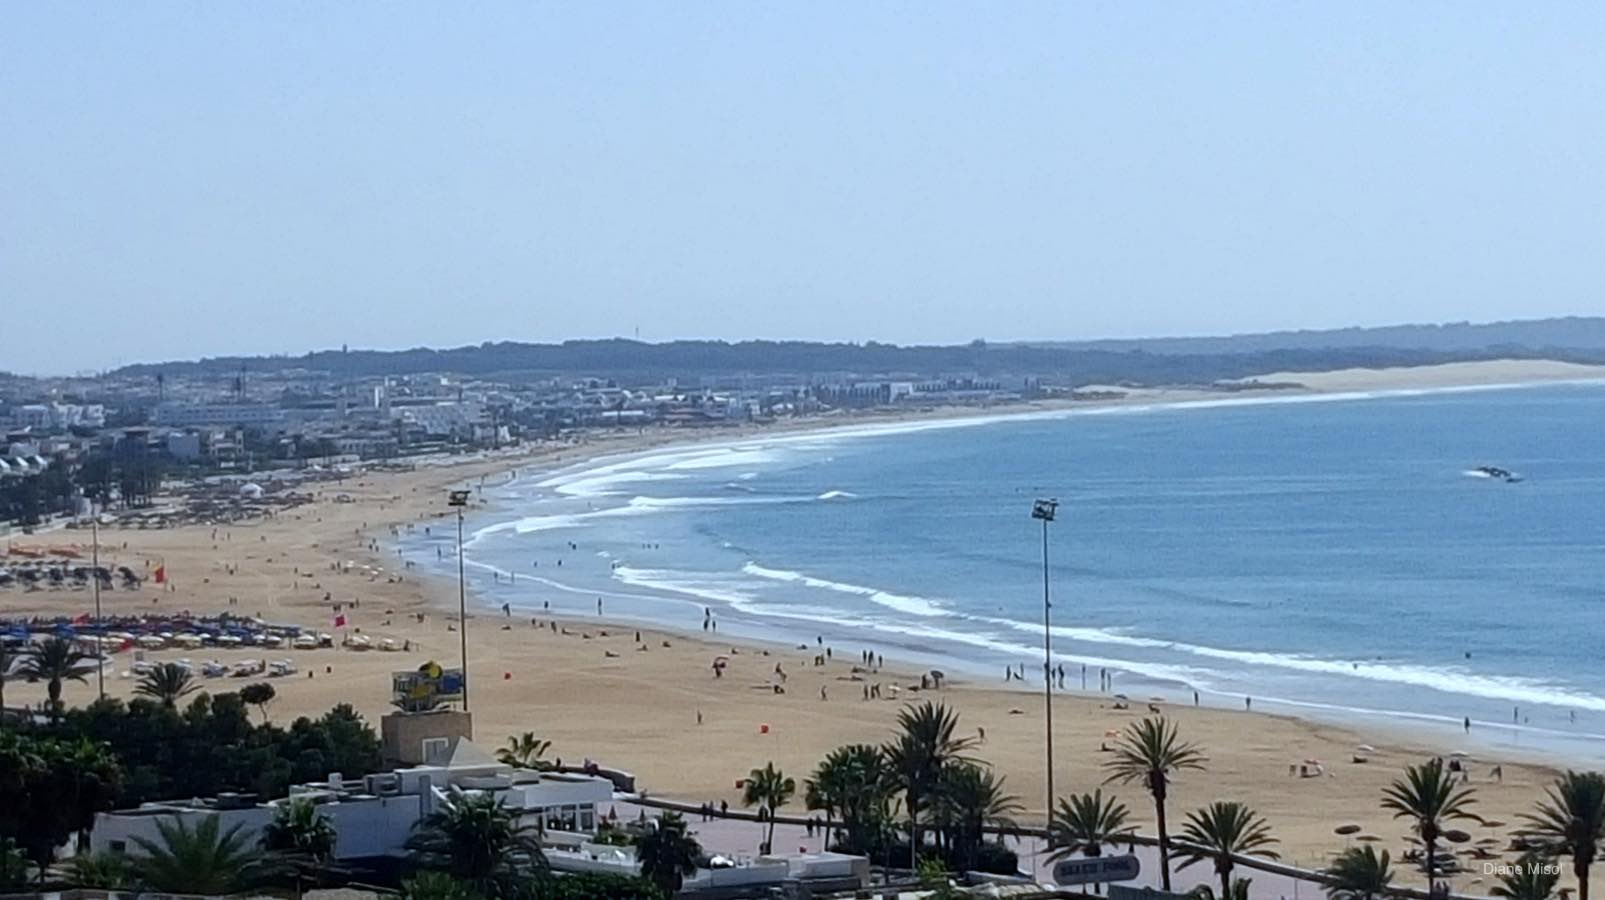 Beach View From Kasbah, Agadir, Morocco